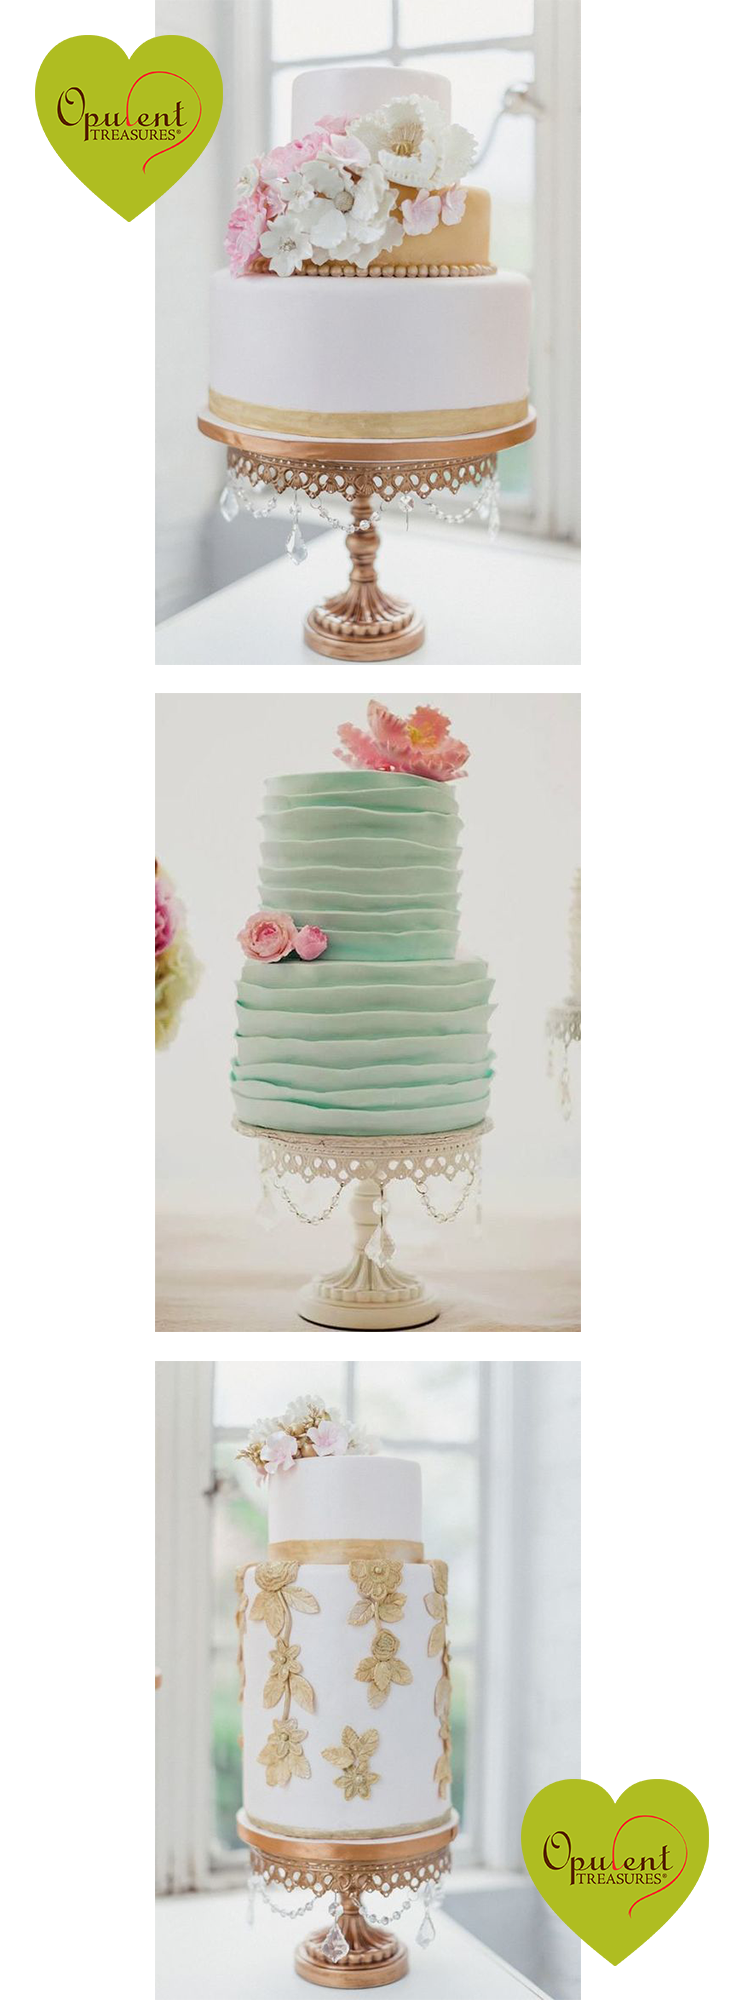 Opulent-Treasures-Cake-stands.png